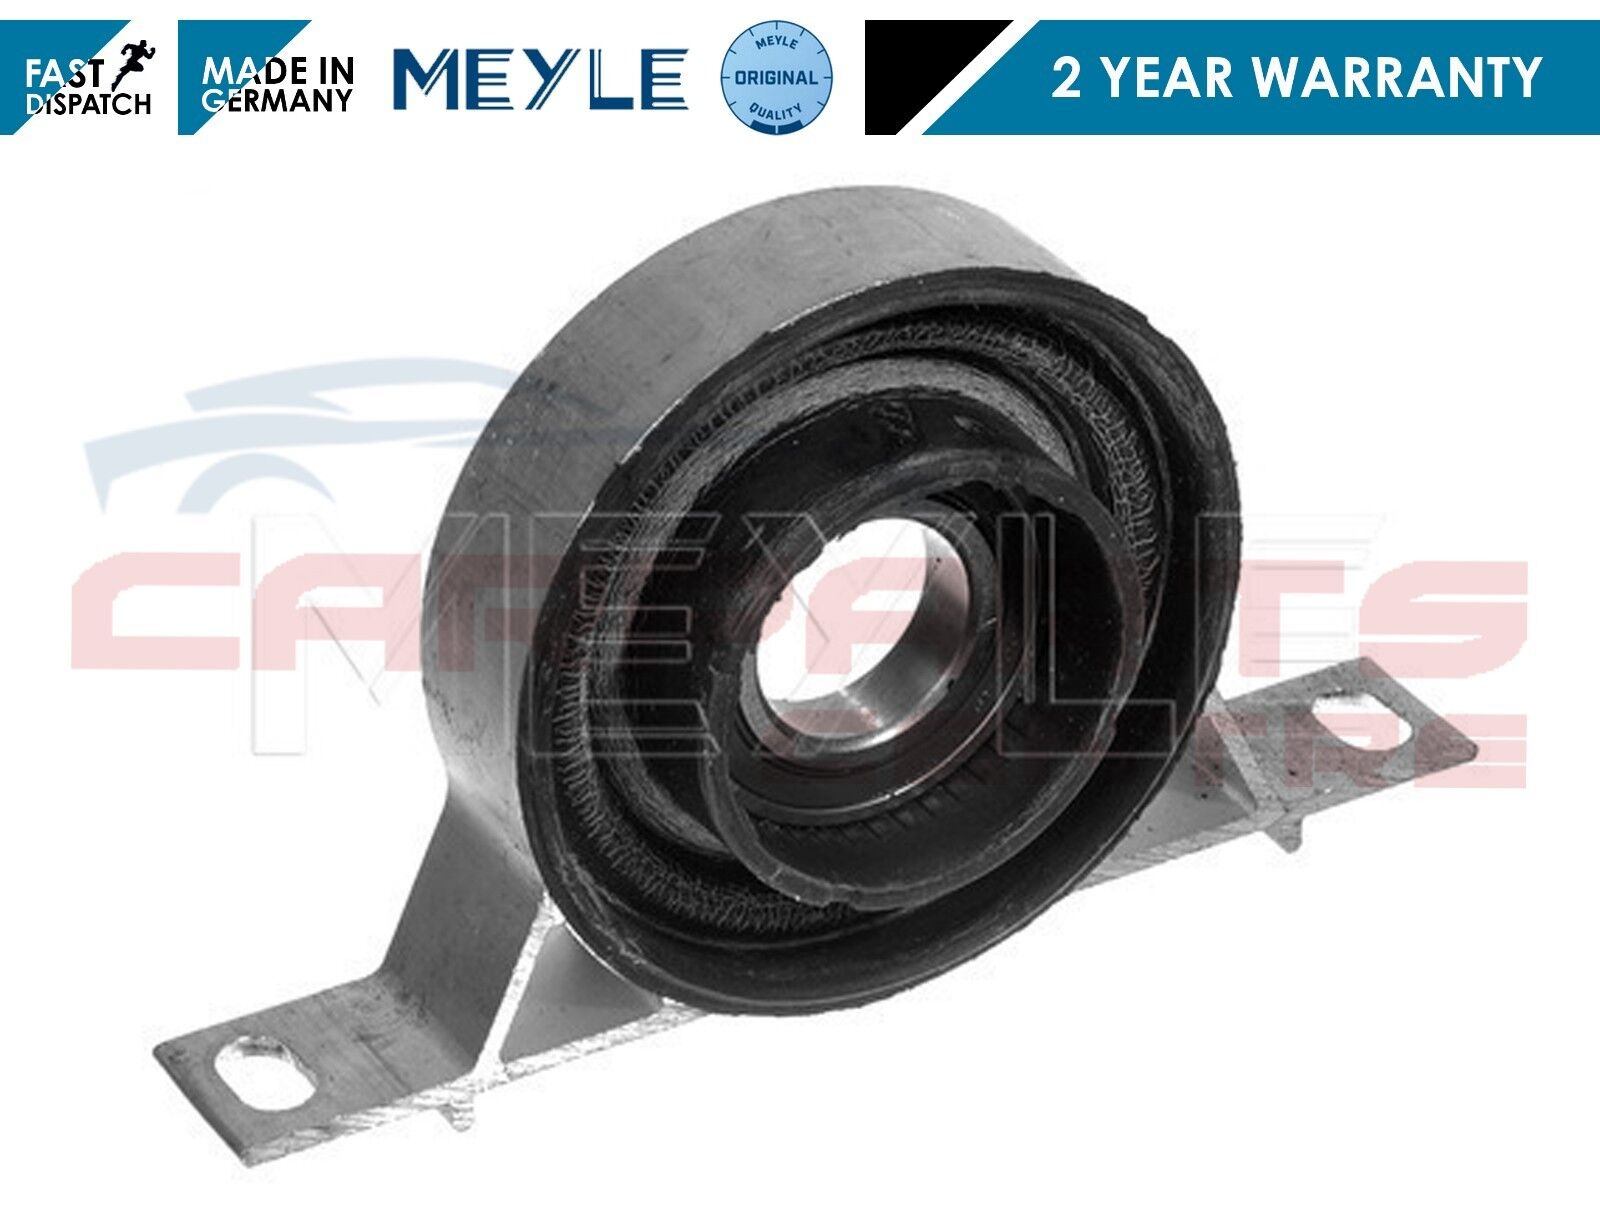 2001-2016 3.0 D 184HP E53 PROPSHAFT CENTRE BEARING CARRIER MOUNTING FIT BMW X5